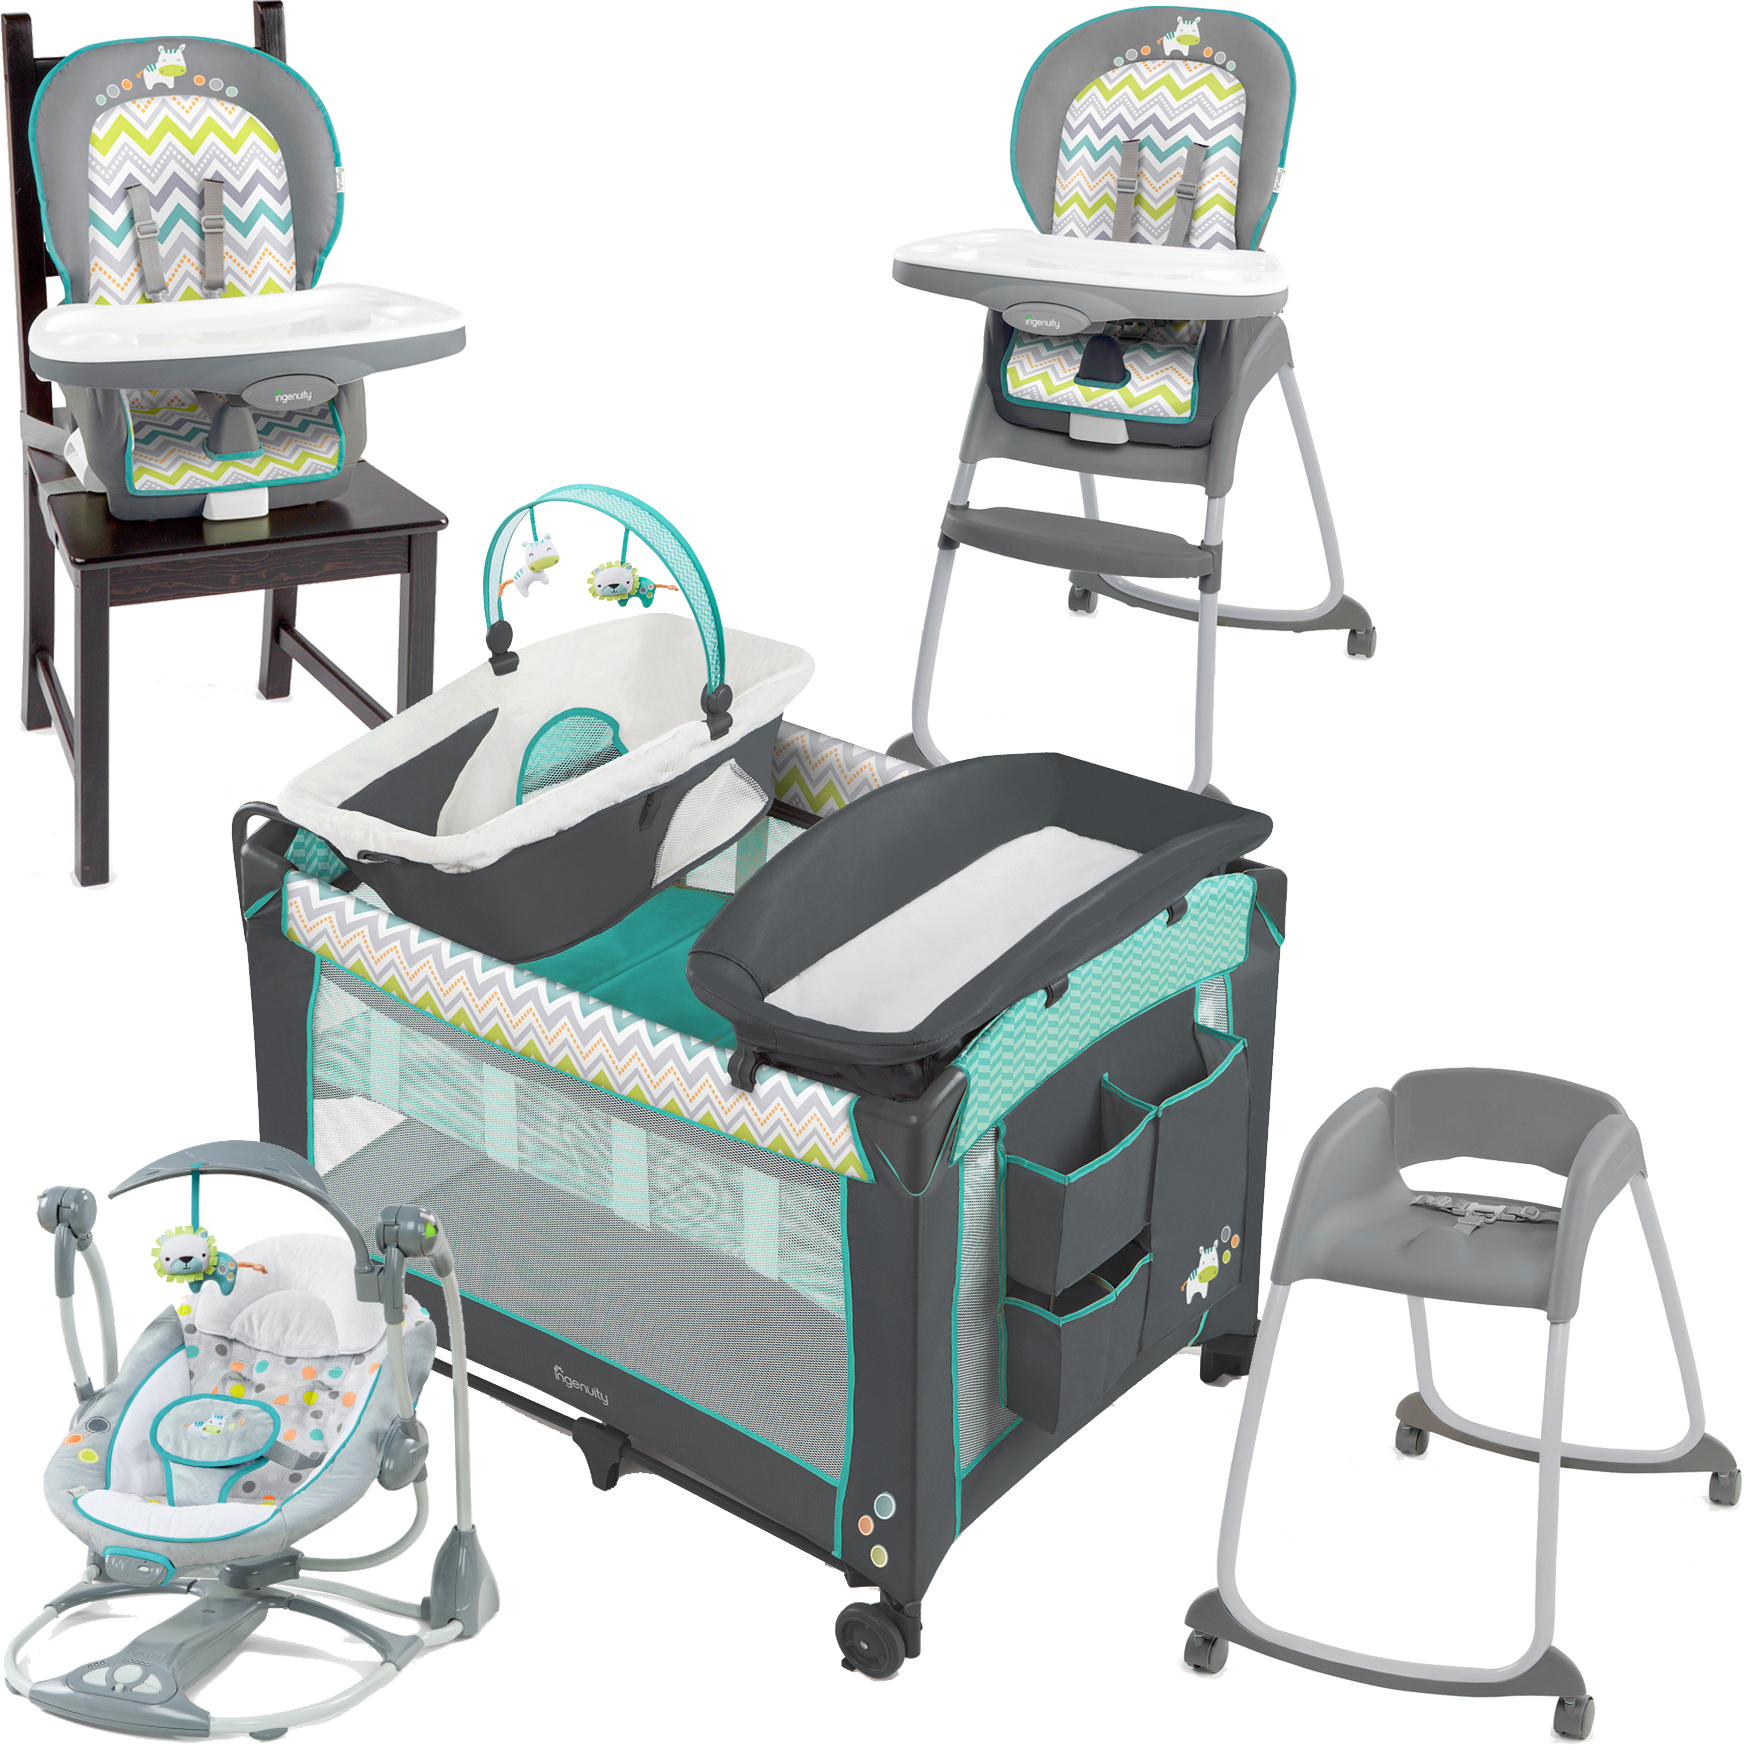 Ingenuity Ridgedale Collection Playard, Swing, and High Chair Value Set